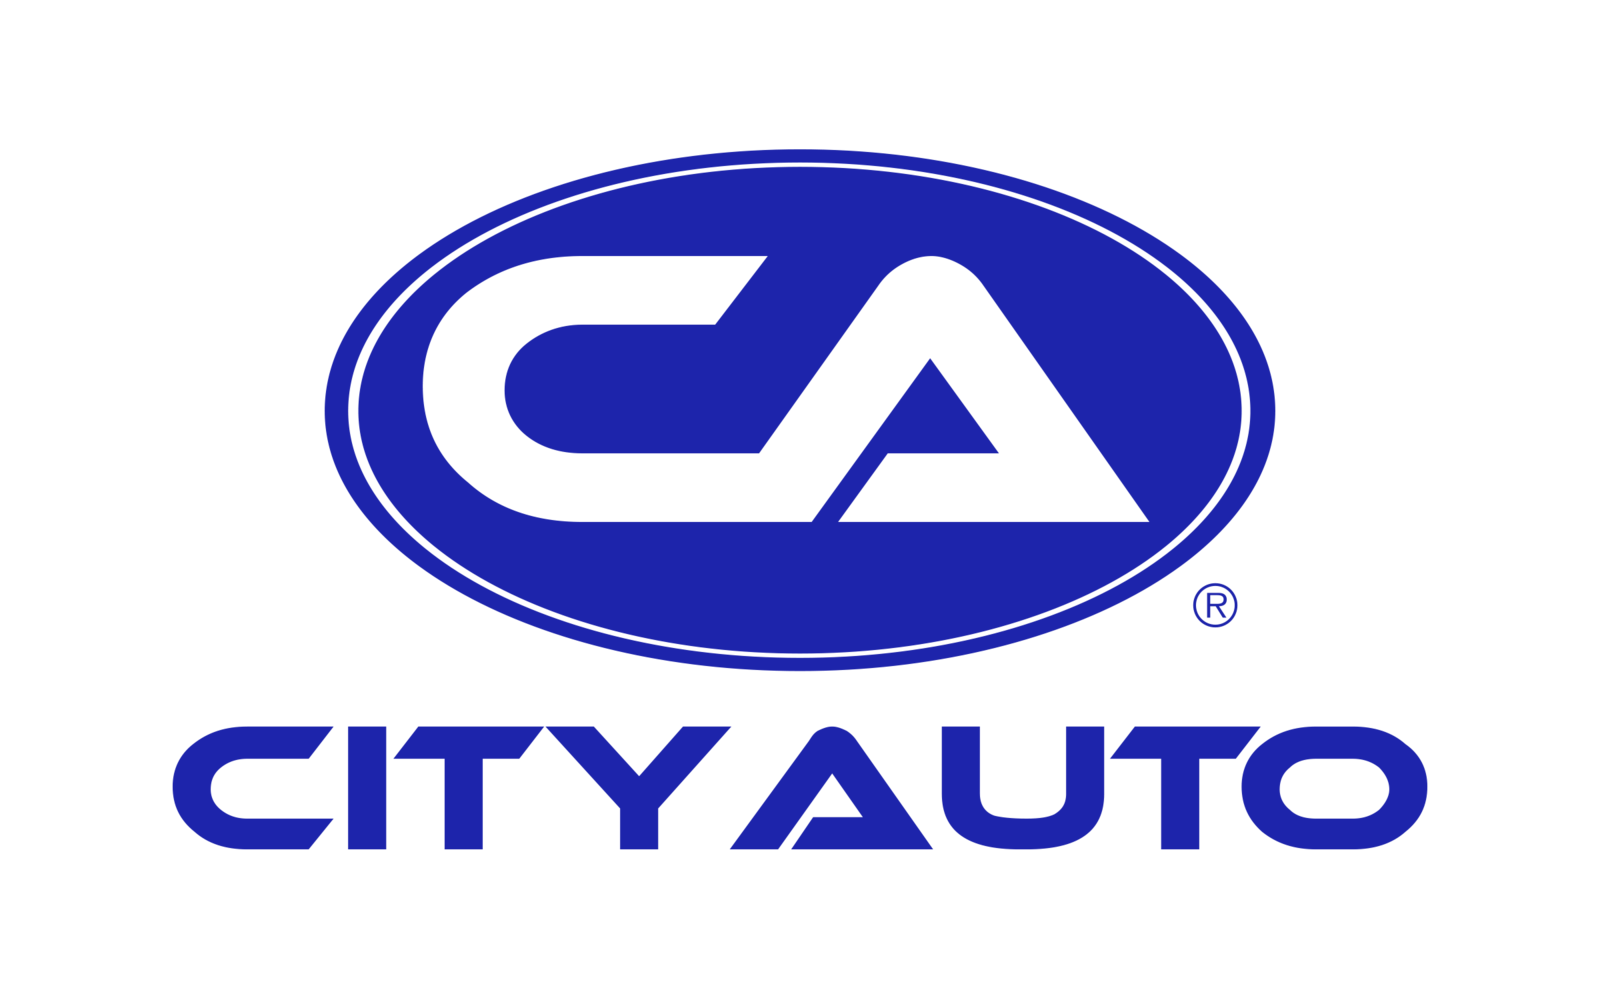 Honda Dealership Memphis >> City Auto Sales - Salem - Memphis, TN: Read Consumer reviews, Browse Used and New Cars for Sale